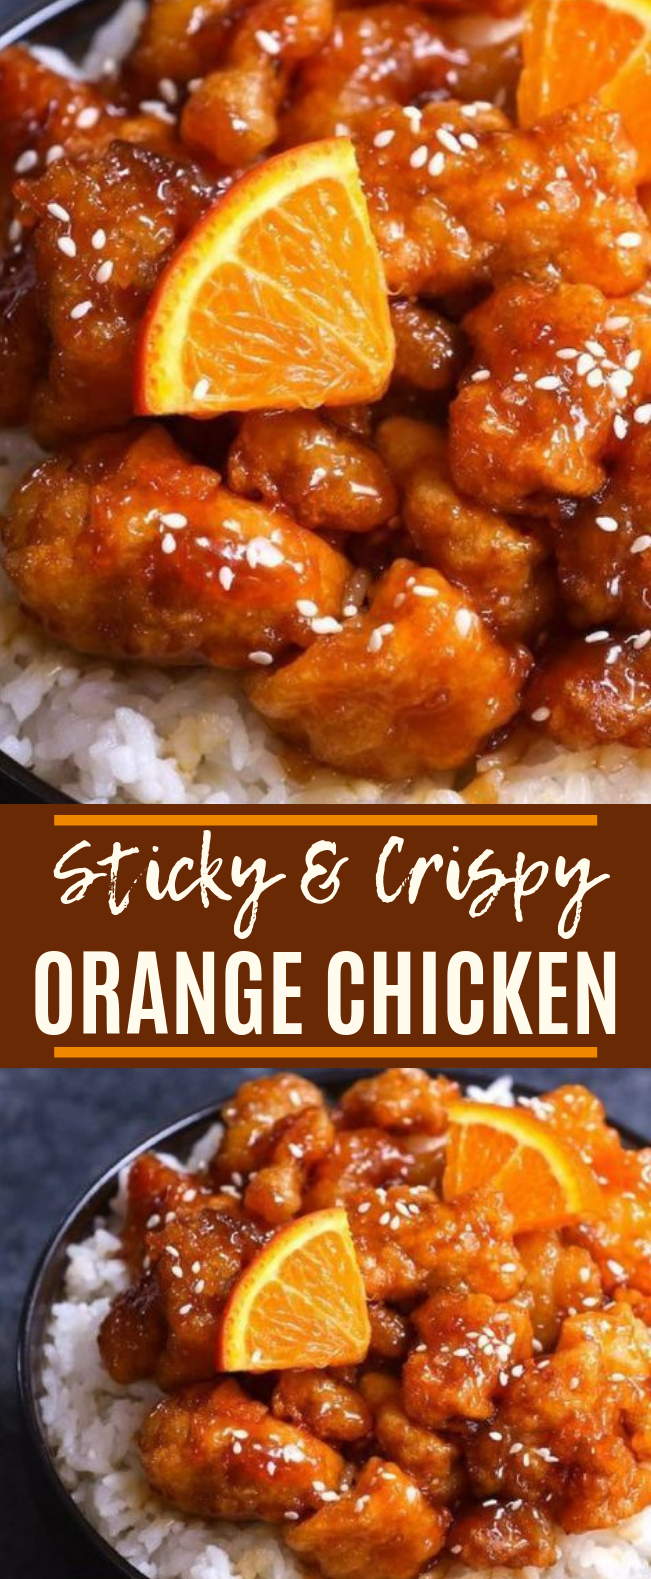 Orange Chicken #dinner #chicken